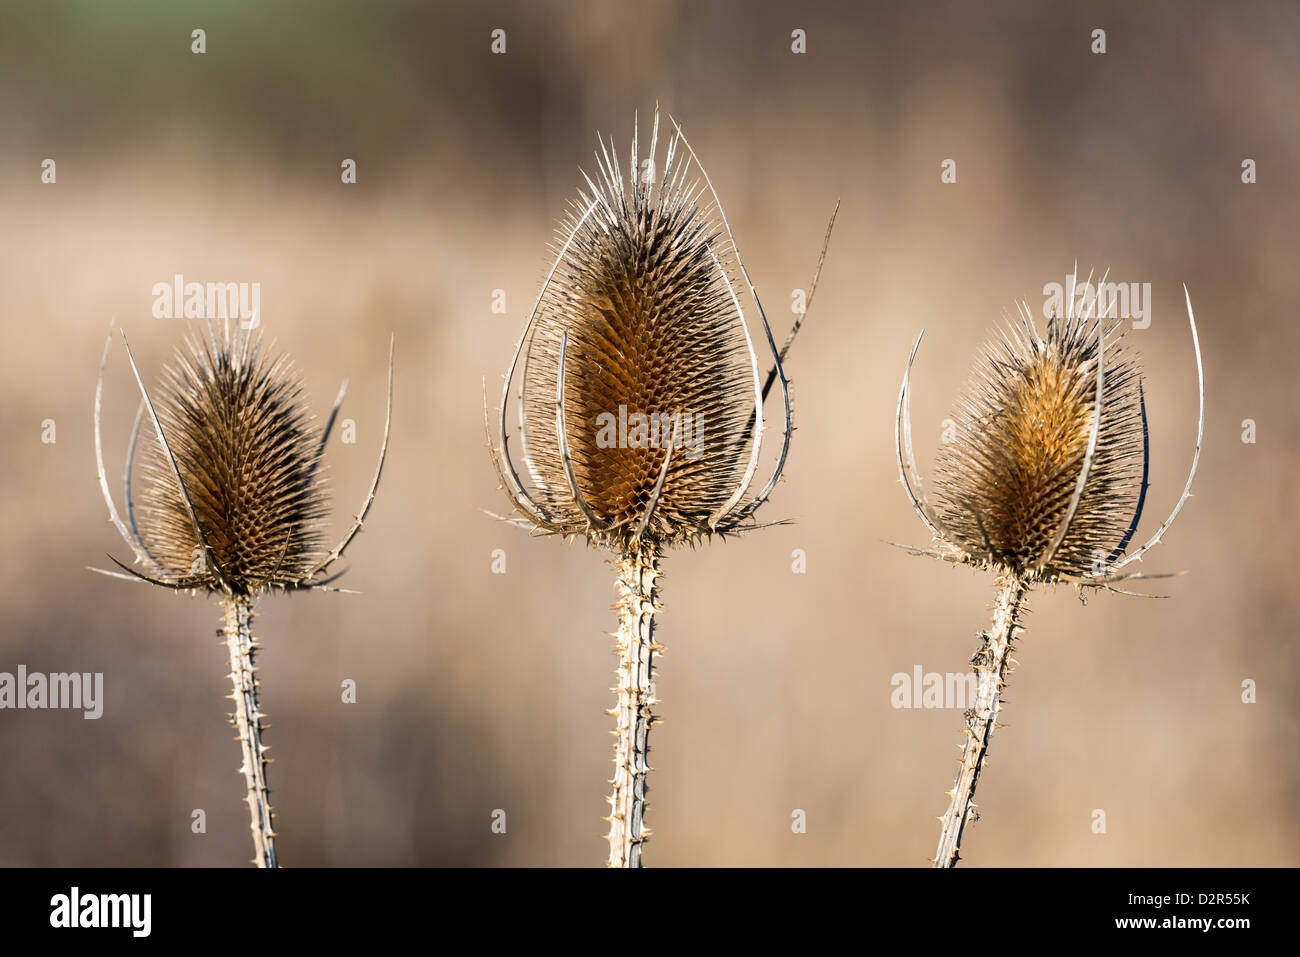 Teasels - Stock Image